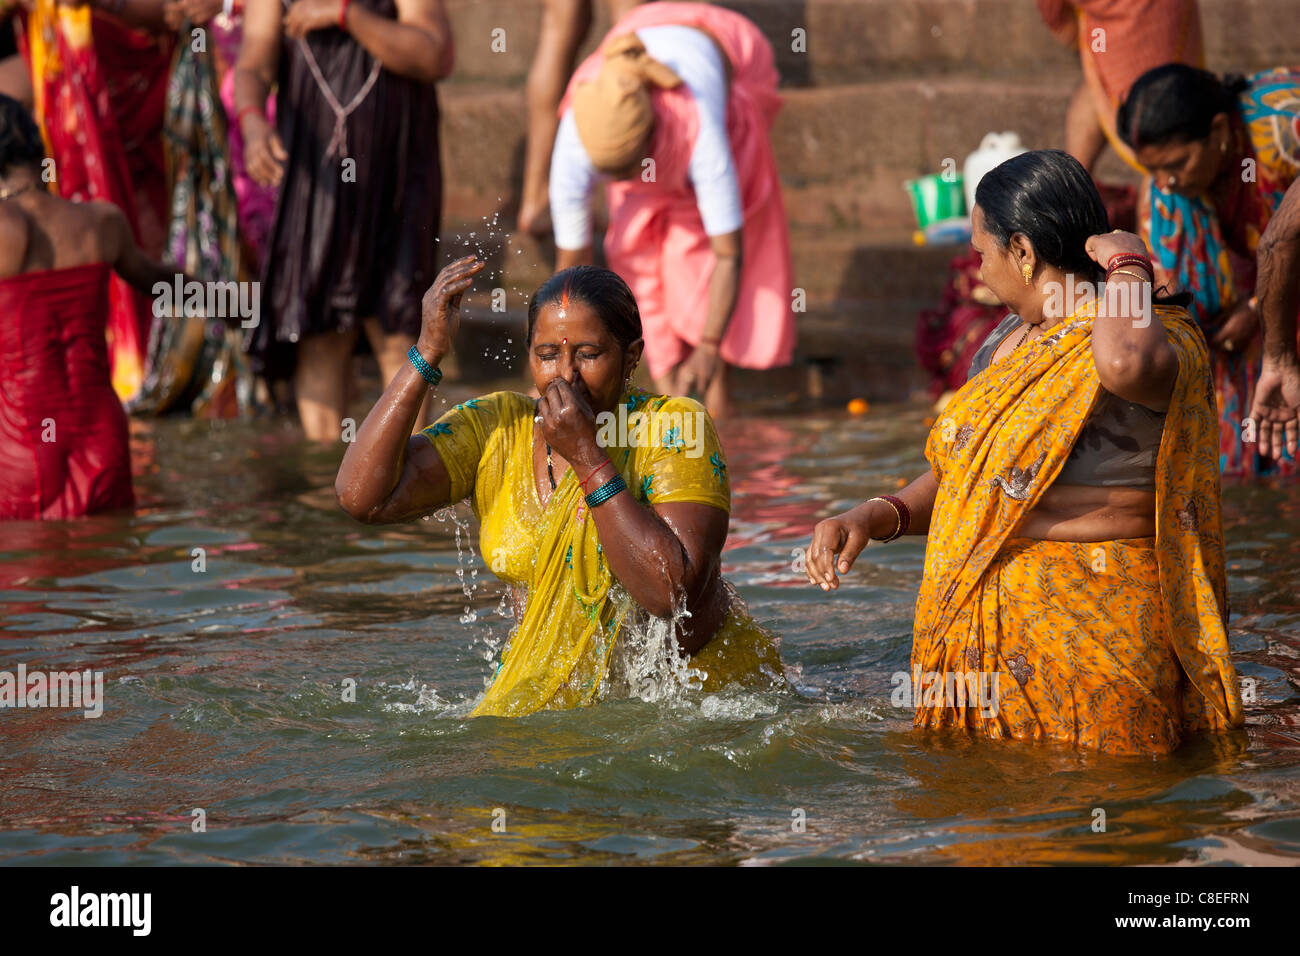 Indian Hindu Pilgrims Bathing In The Ganges River At